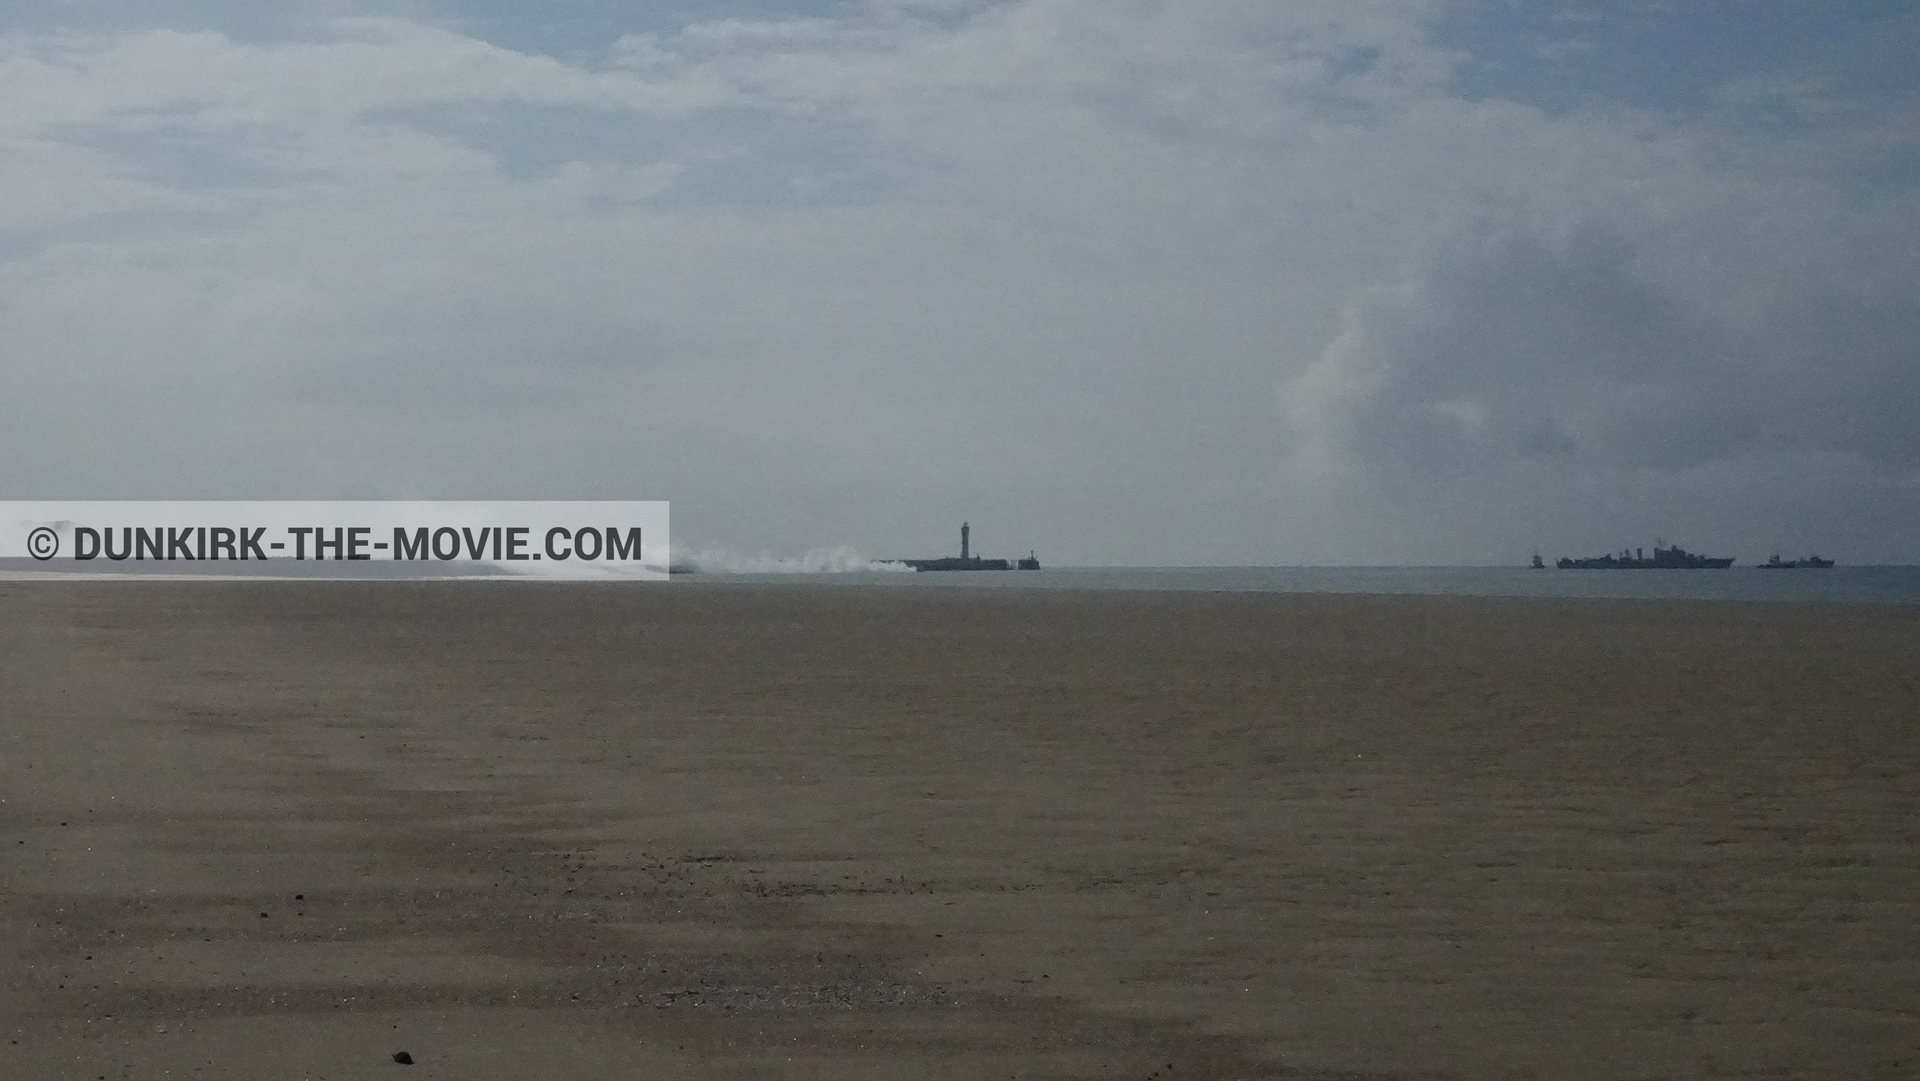 Picture with cloudy sky, white smoke, beach,  from behind the scene of the Dunkirk movie by Nolan